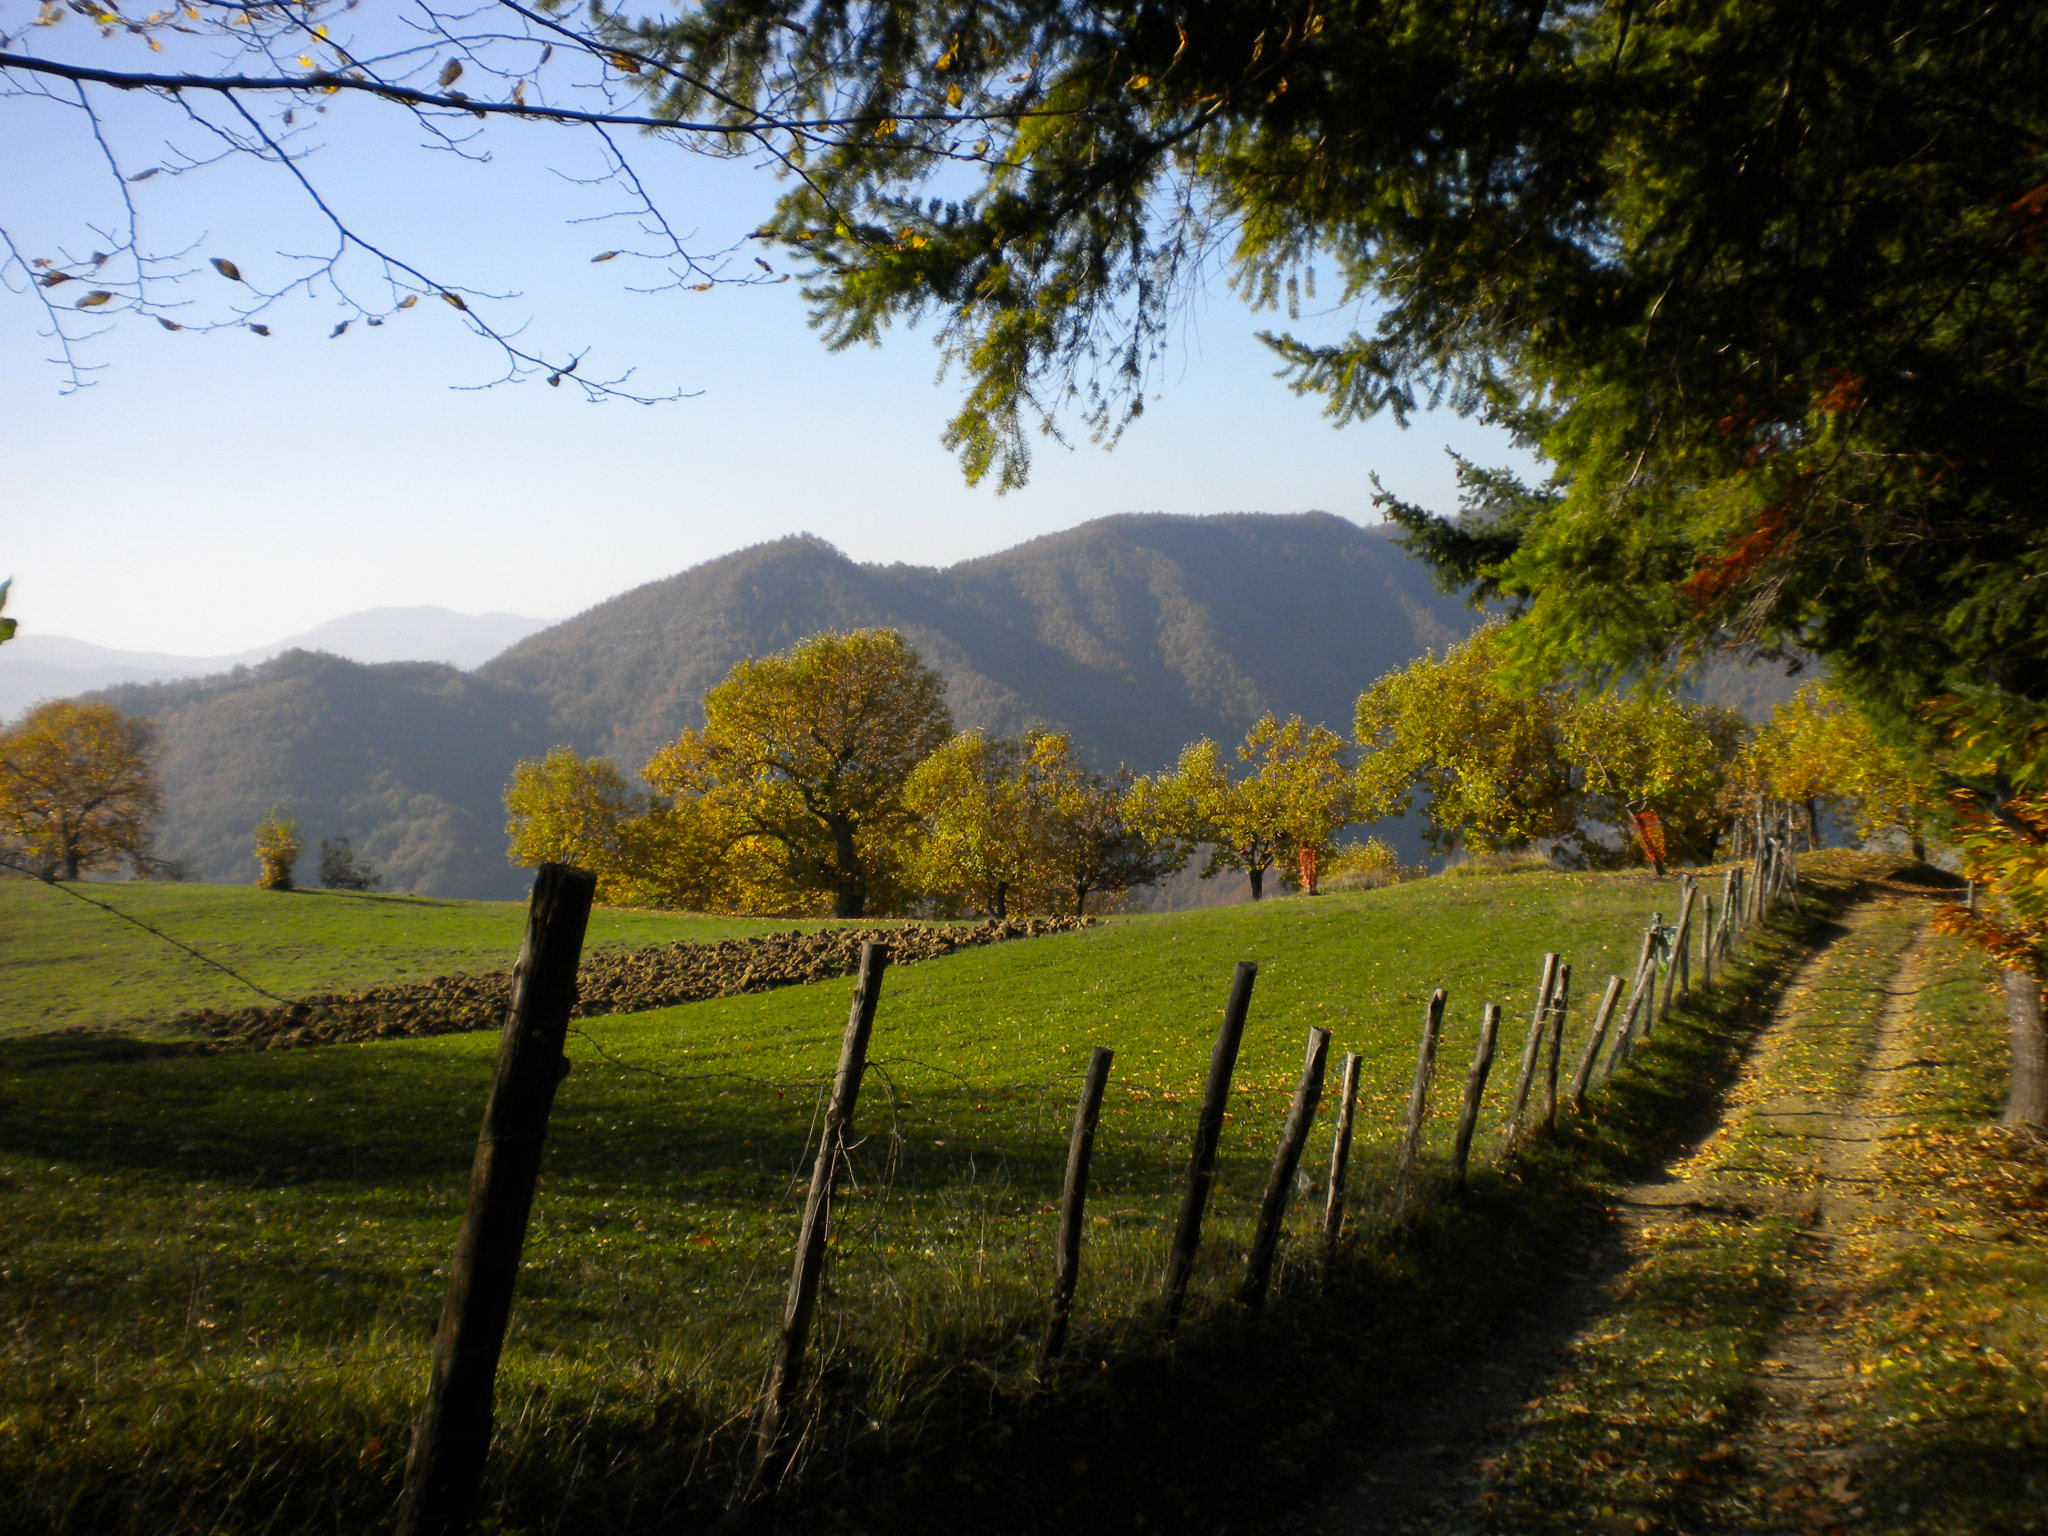 Palazzuolo sul Senio - Borderland in the heart of the Apennines